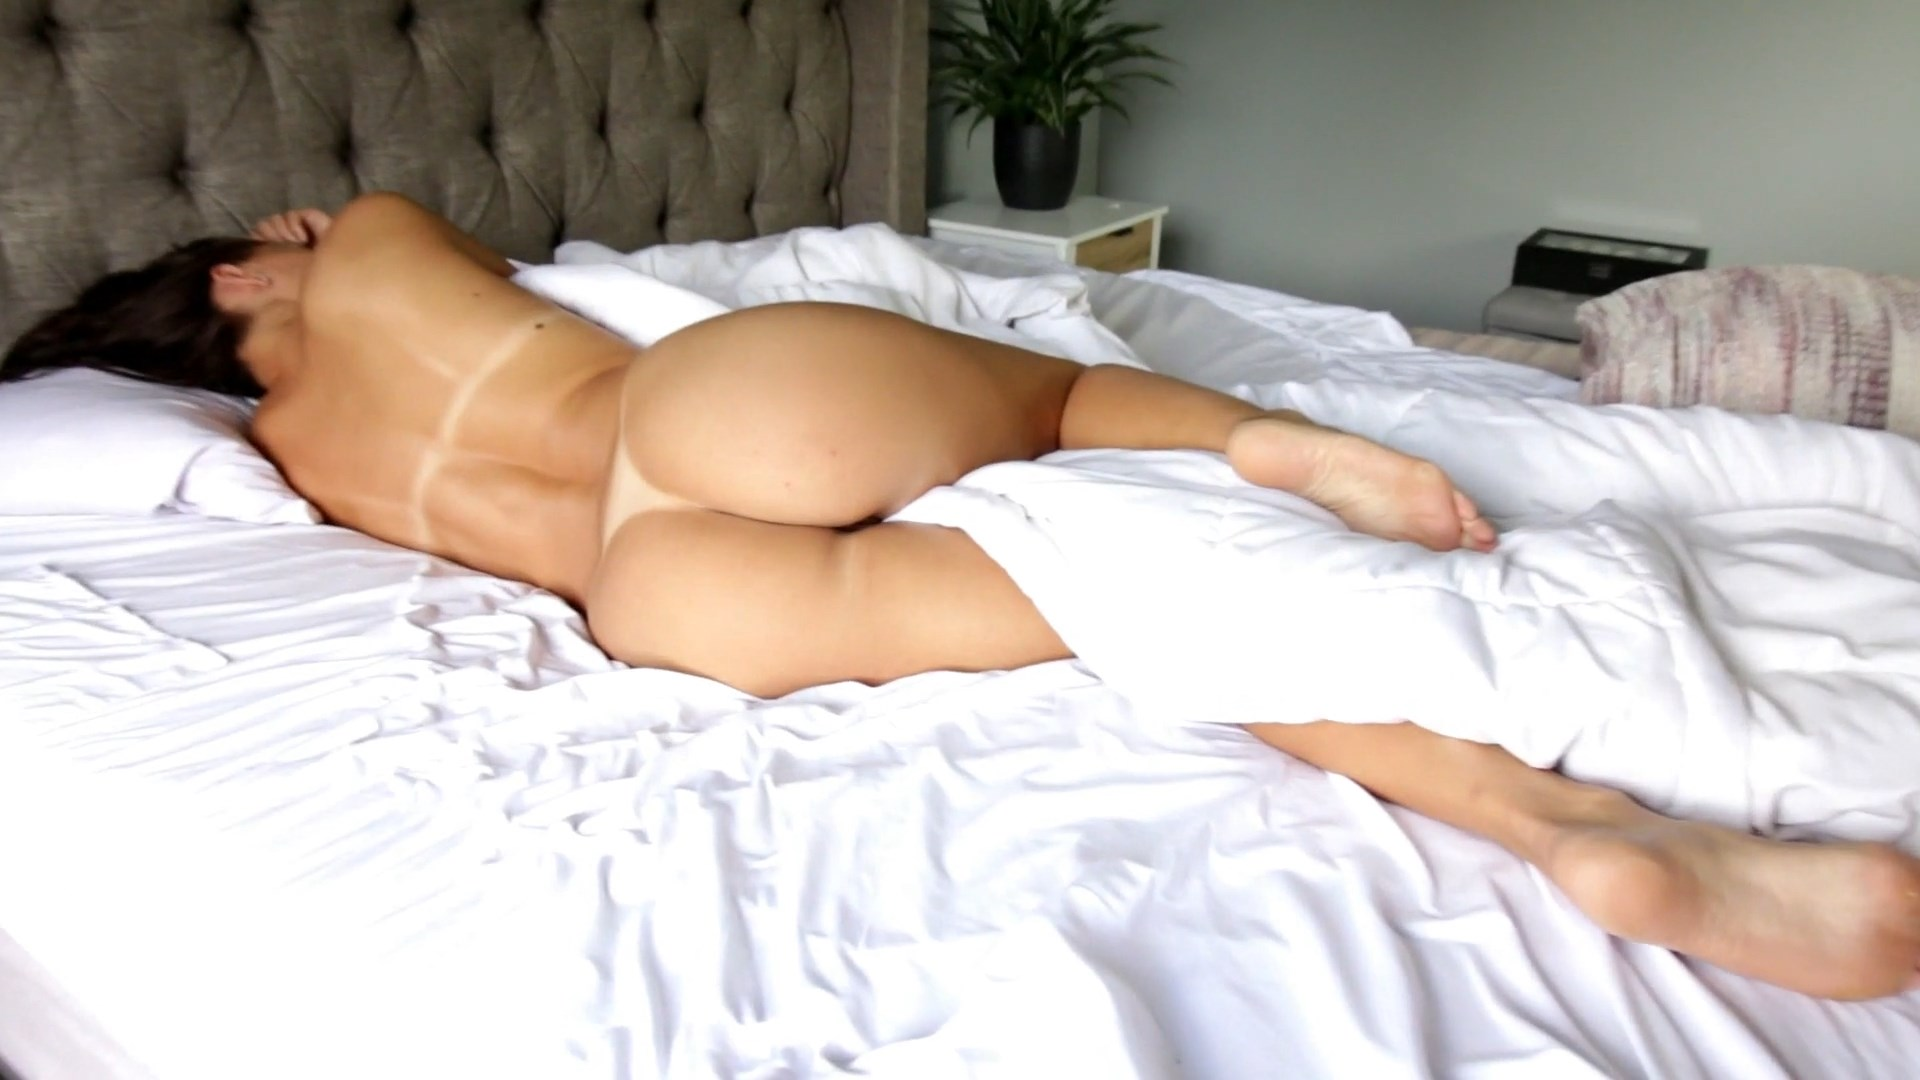 Florina Fitness Nude On Bed Video 10 - FULL VIDEO: Florina Fitness Nude Onlyfans!